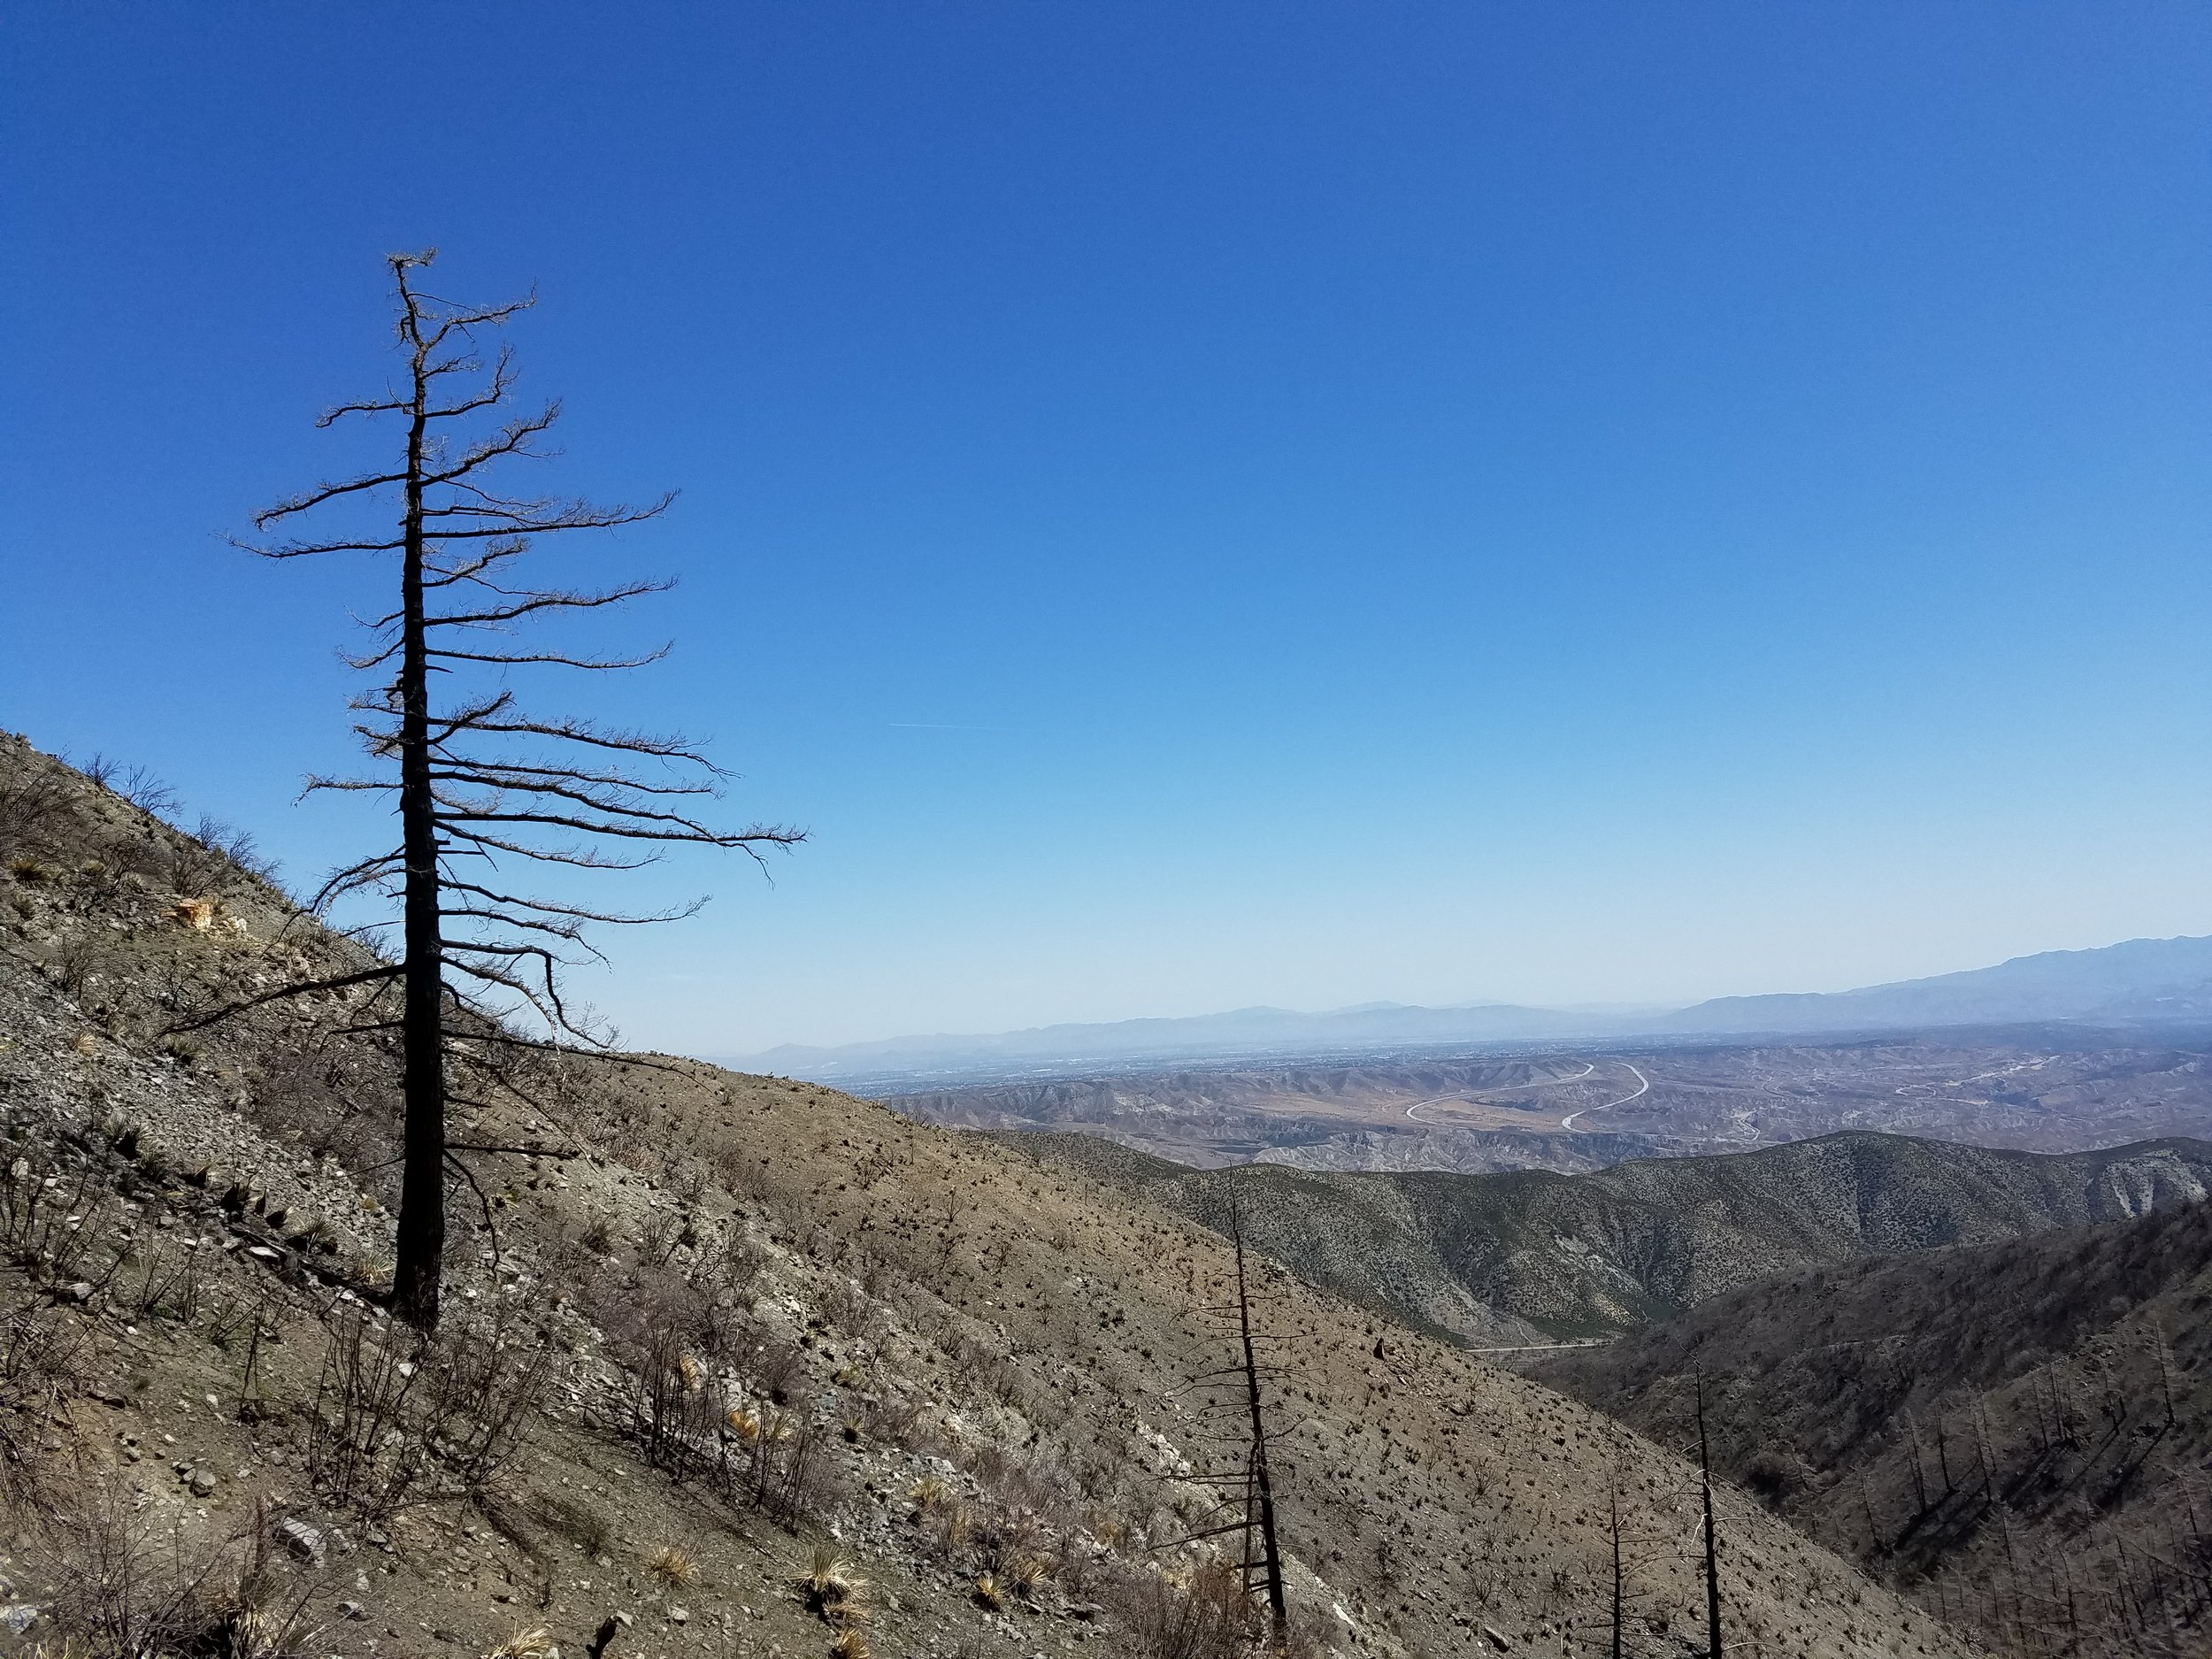 Views along the uphill trudge toward Wrightwood.